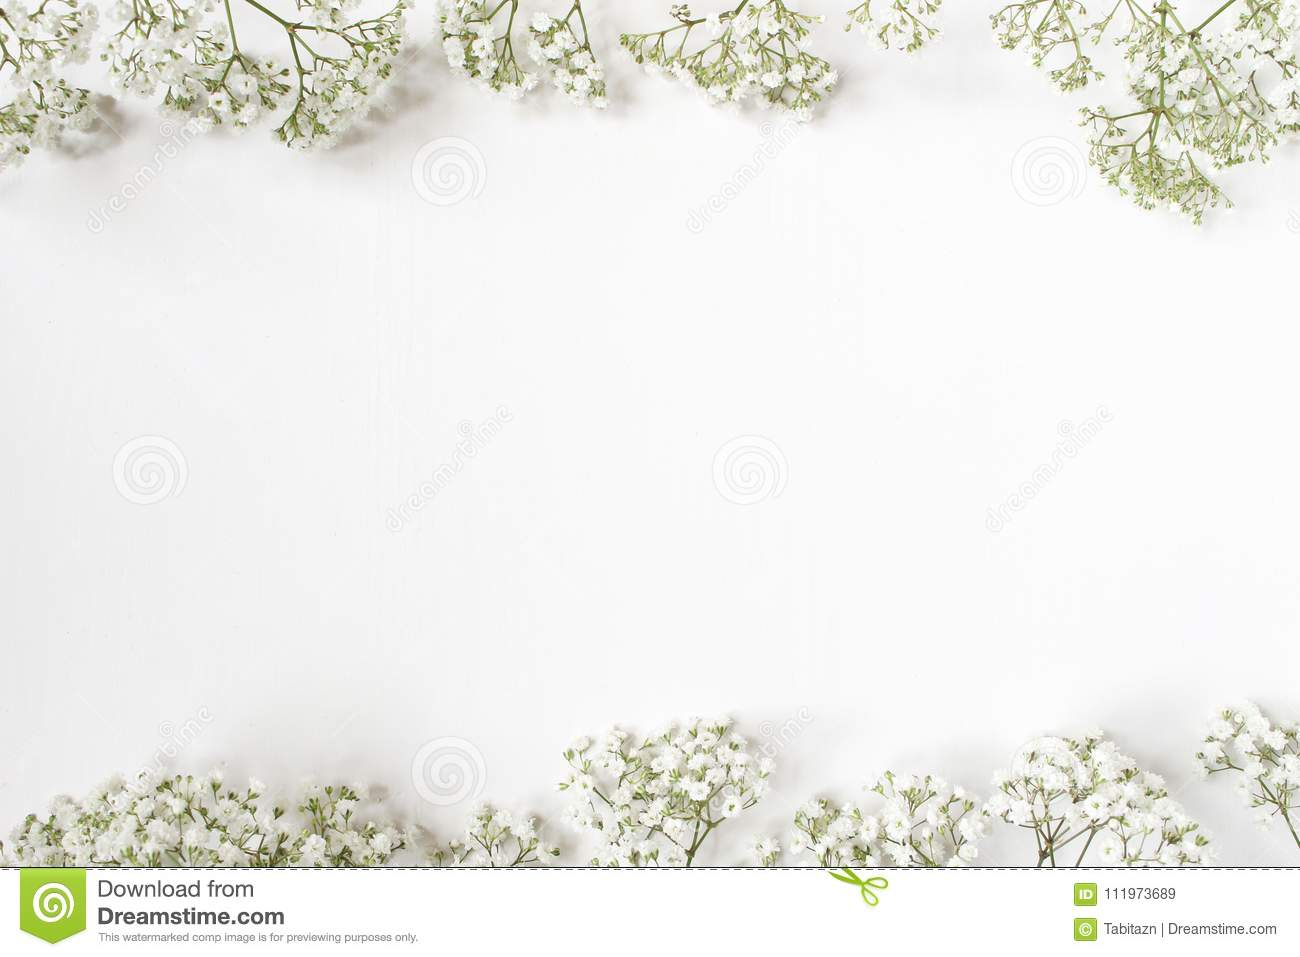 1 082 978 Wedding Background Photos Free Royalty Free Stock Photos From Dreamstime